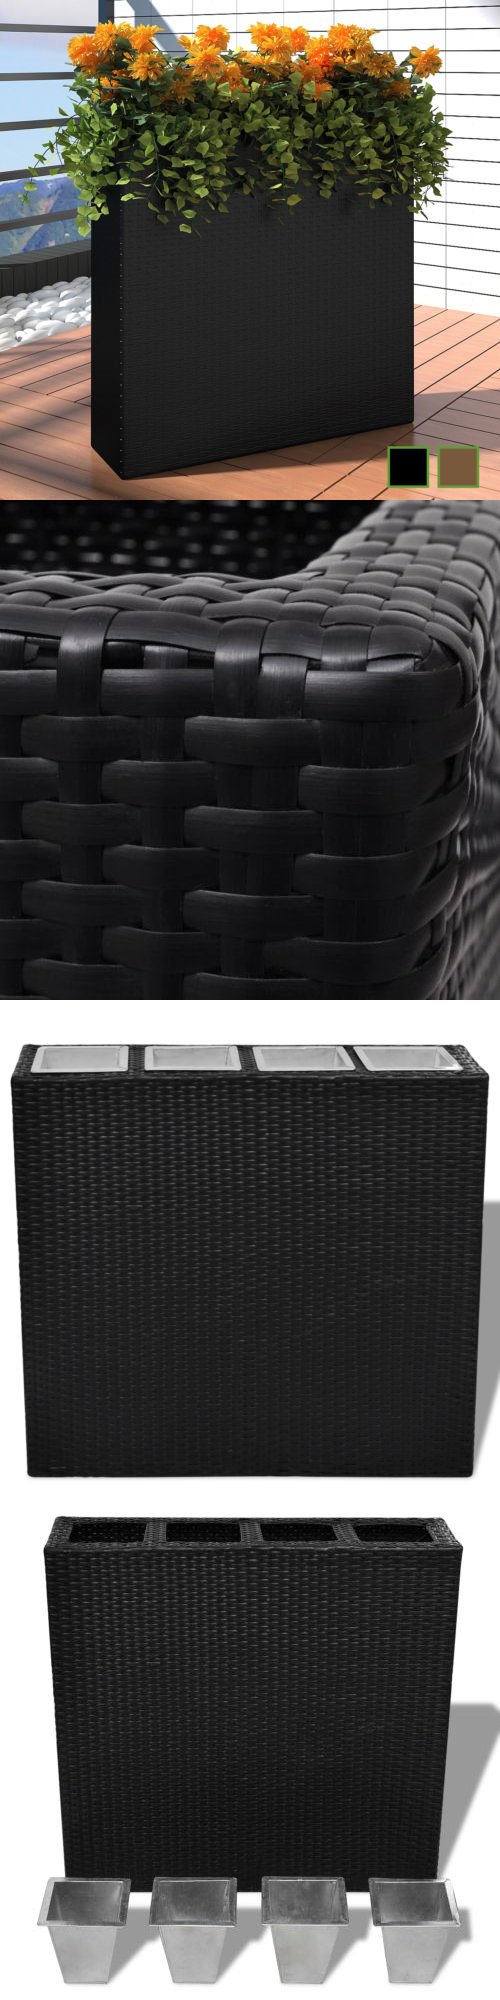 plastic planter liners bunnings black uk lowes box com nz angeloferrer